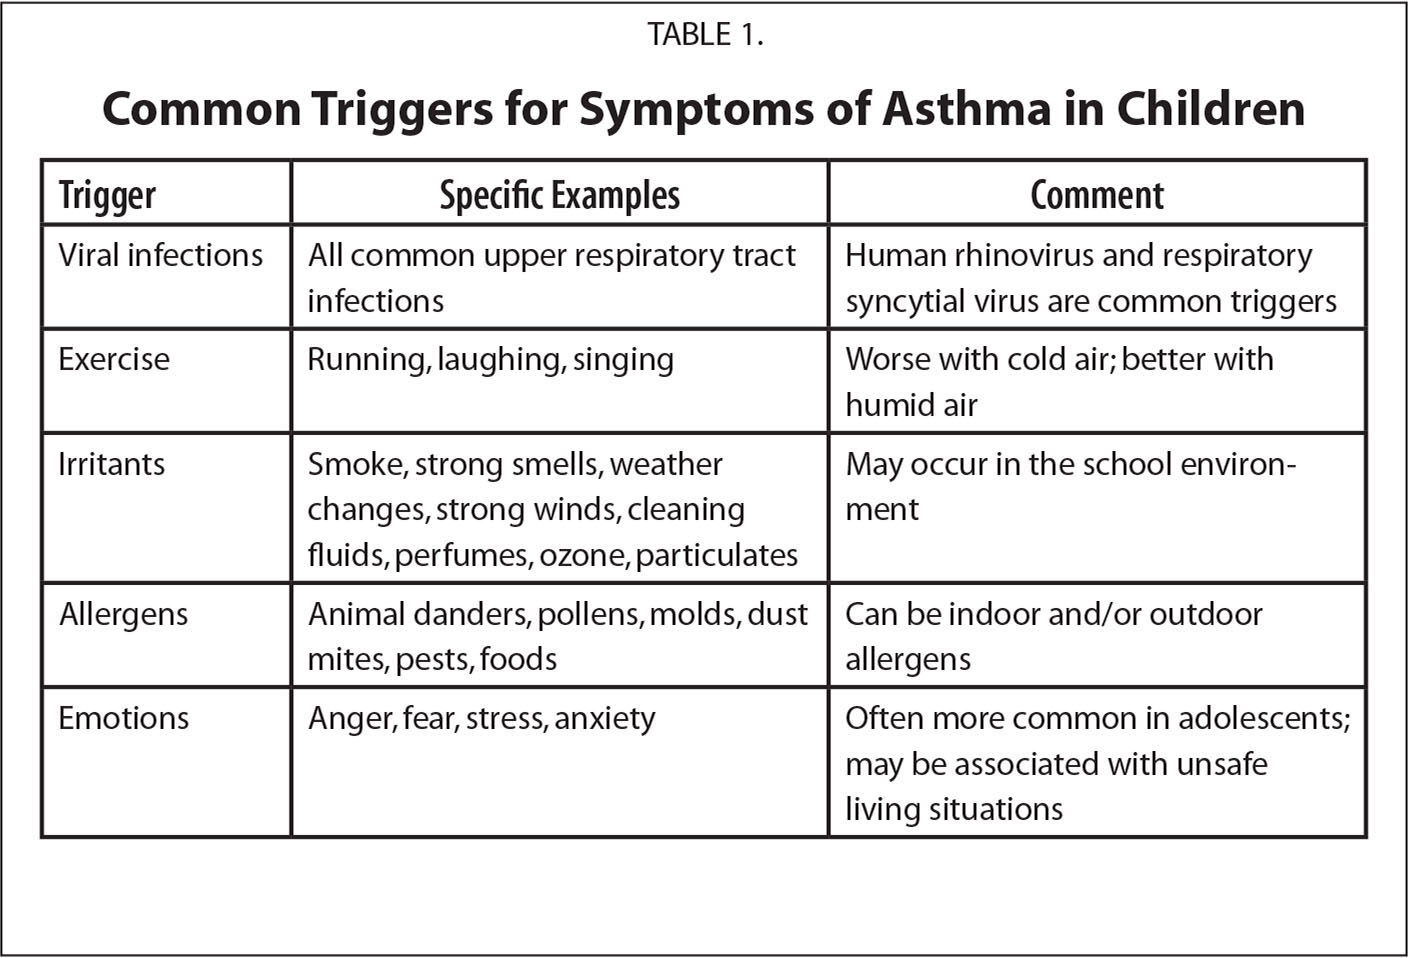 Common Triggers for Symptoms of Asthma in Children